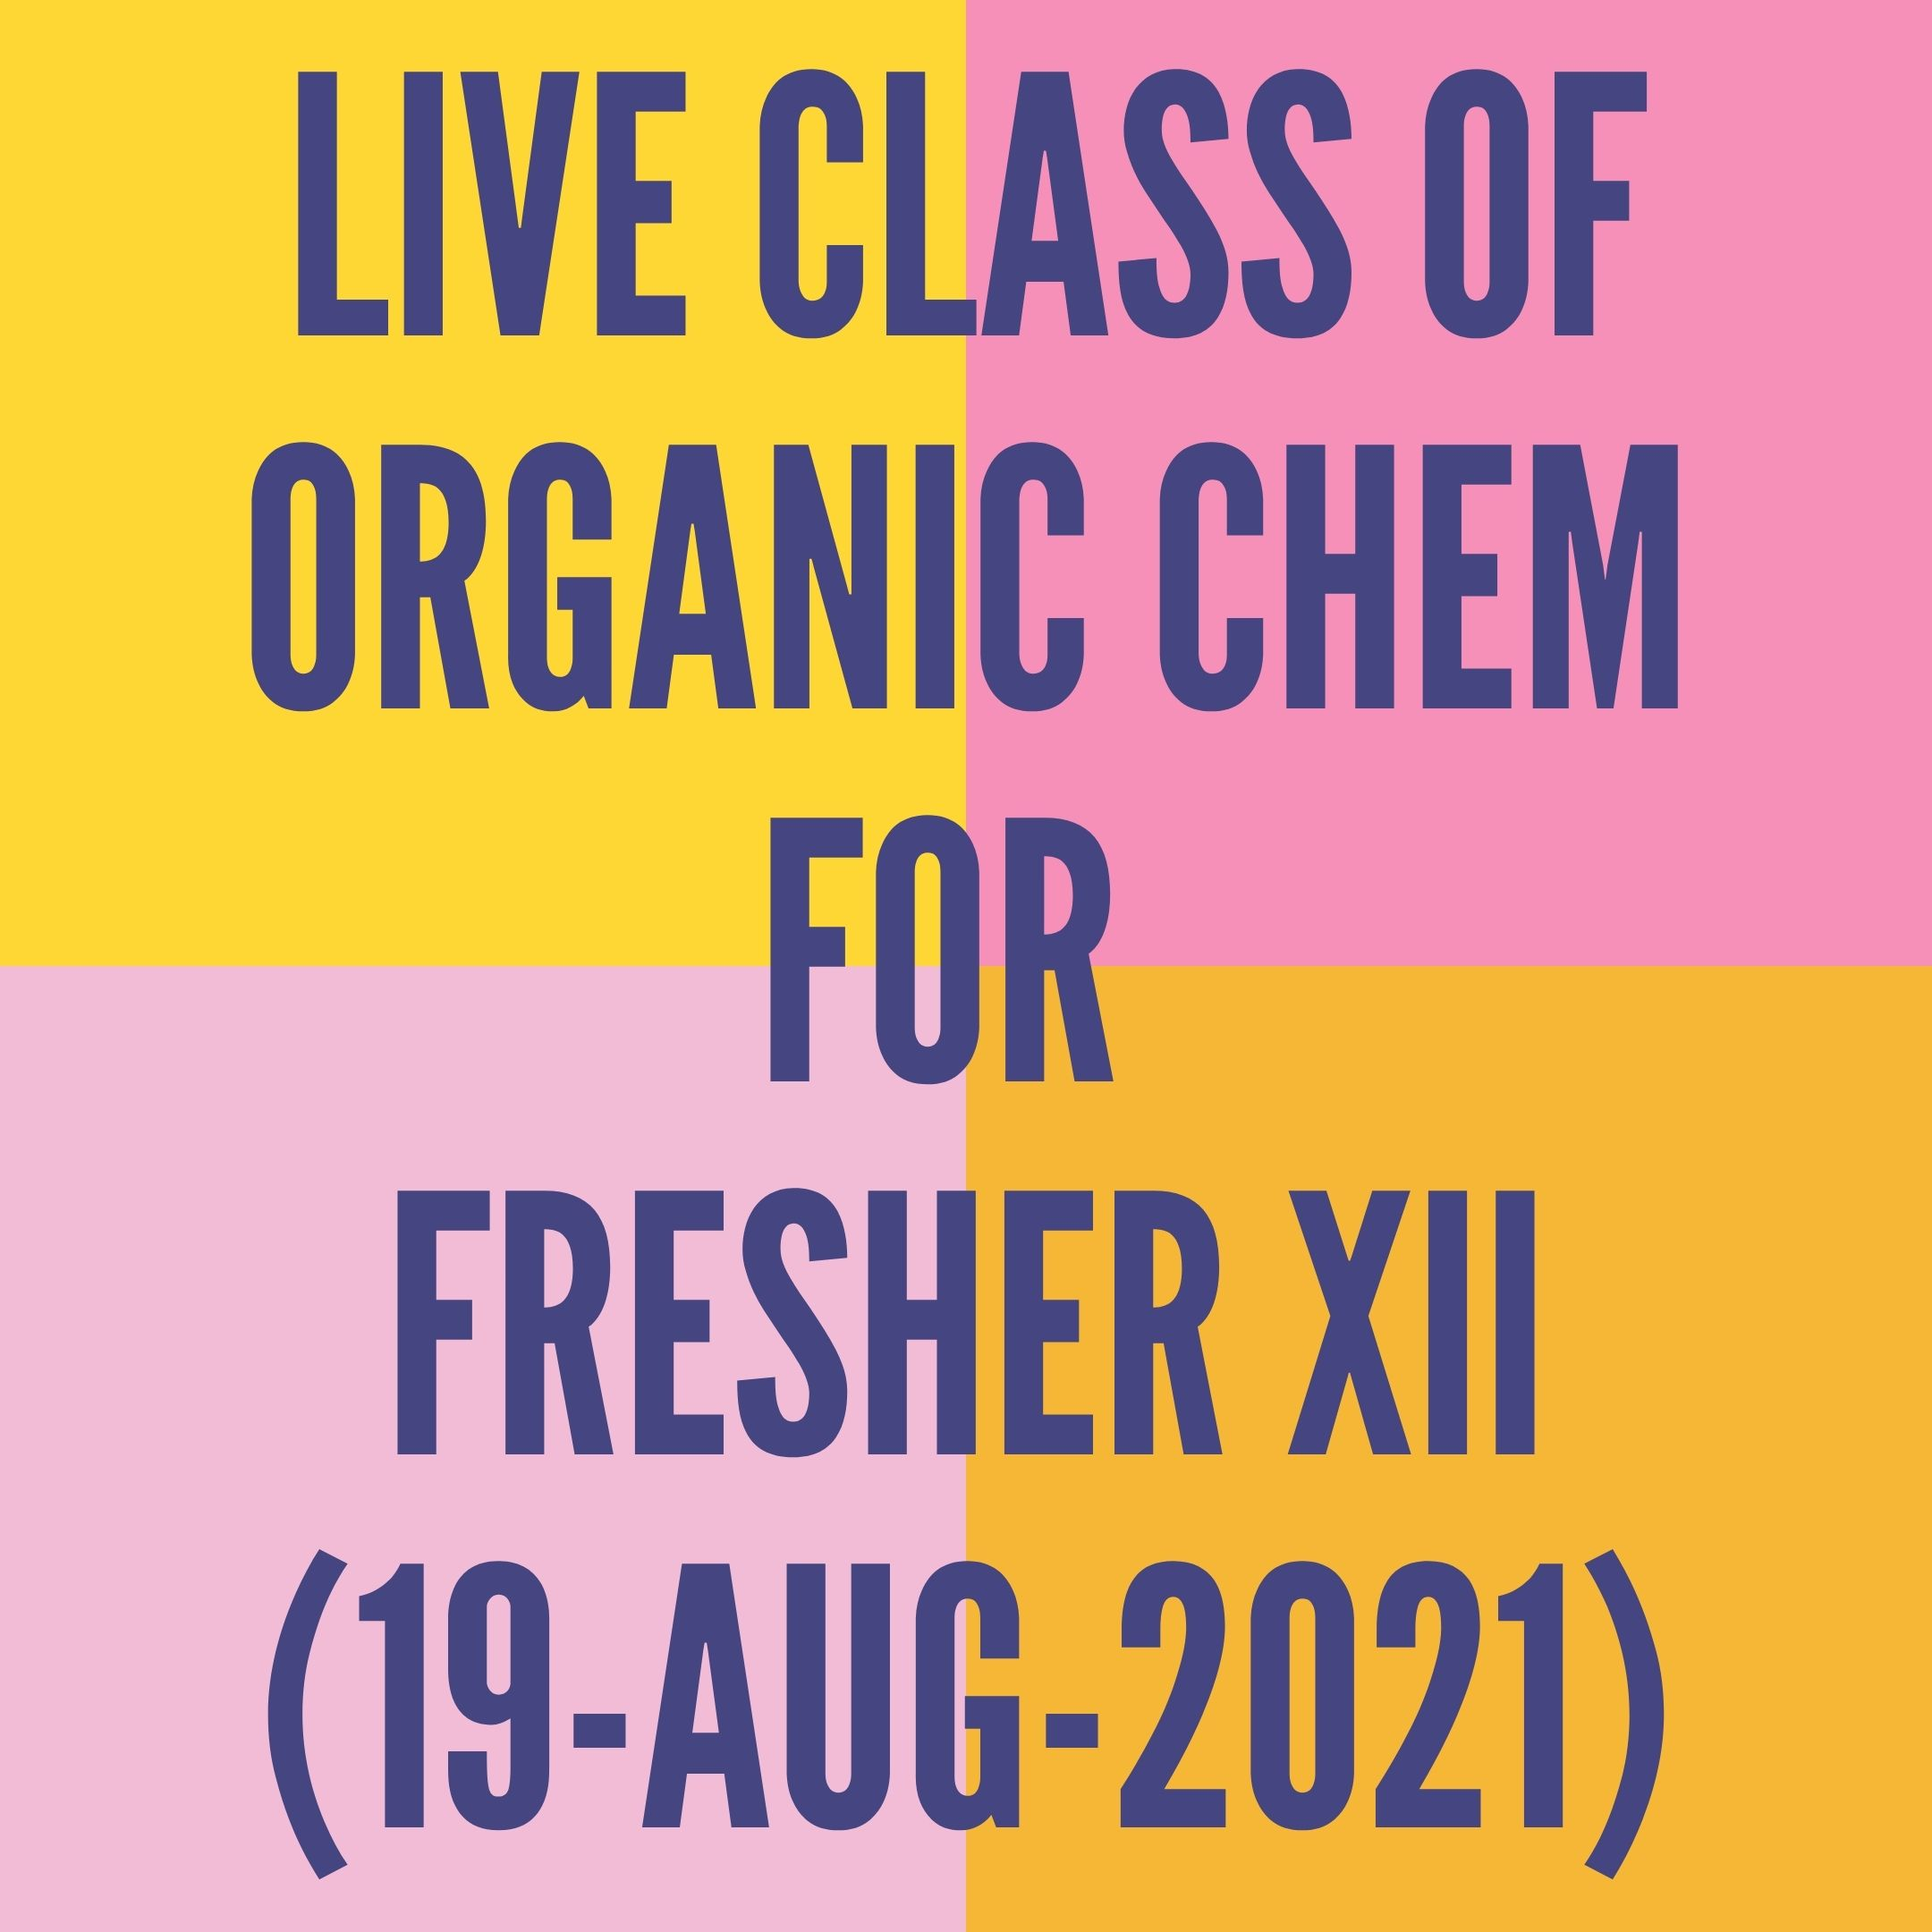 LIVE CLASS OF ORGANIC CHEMISTRY FOR FRESHER XII (19-AUG-2021) ALCOHOL, PHENOL & ETHER